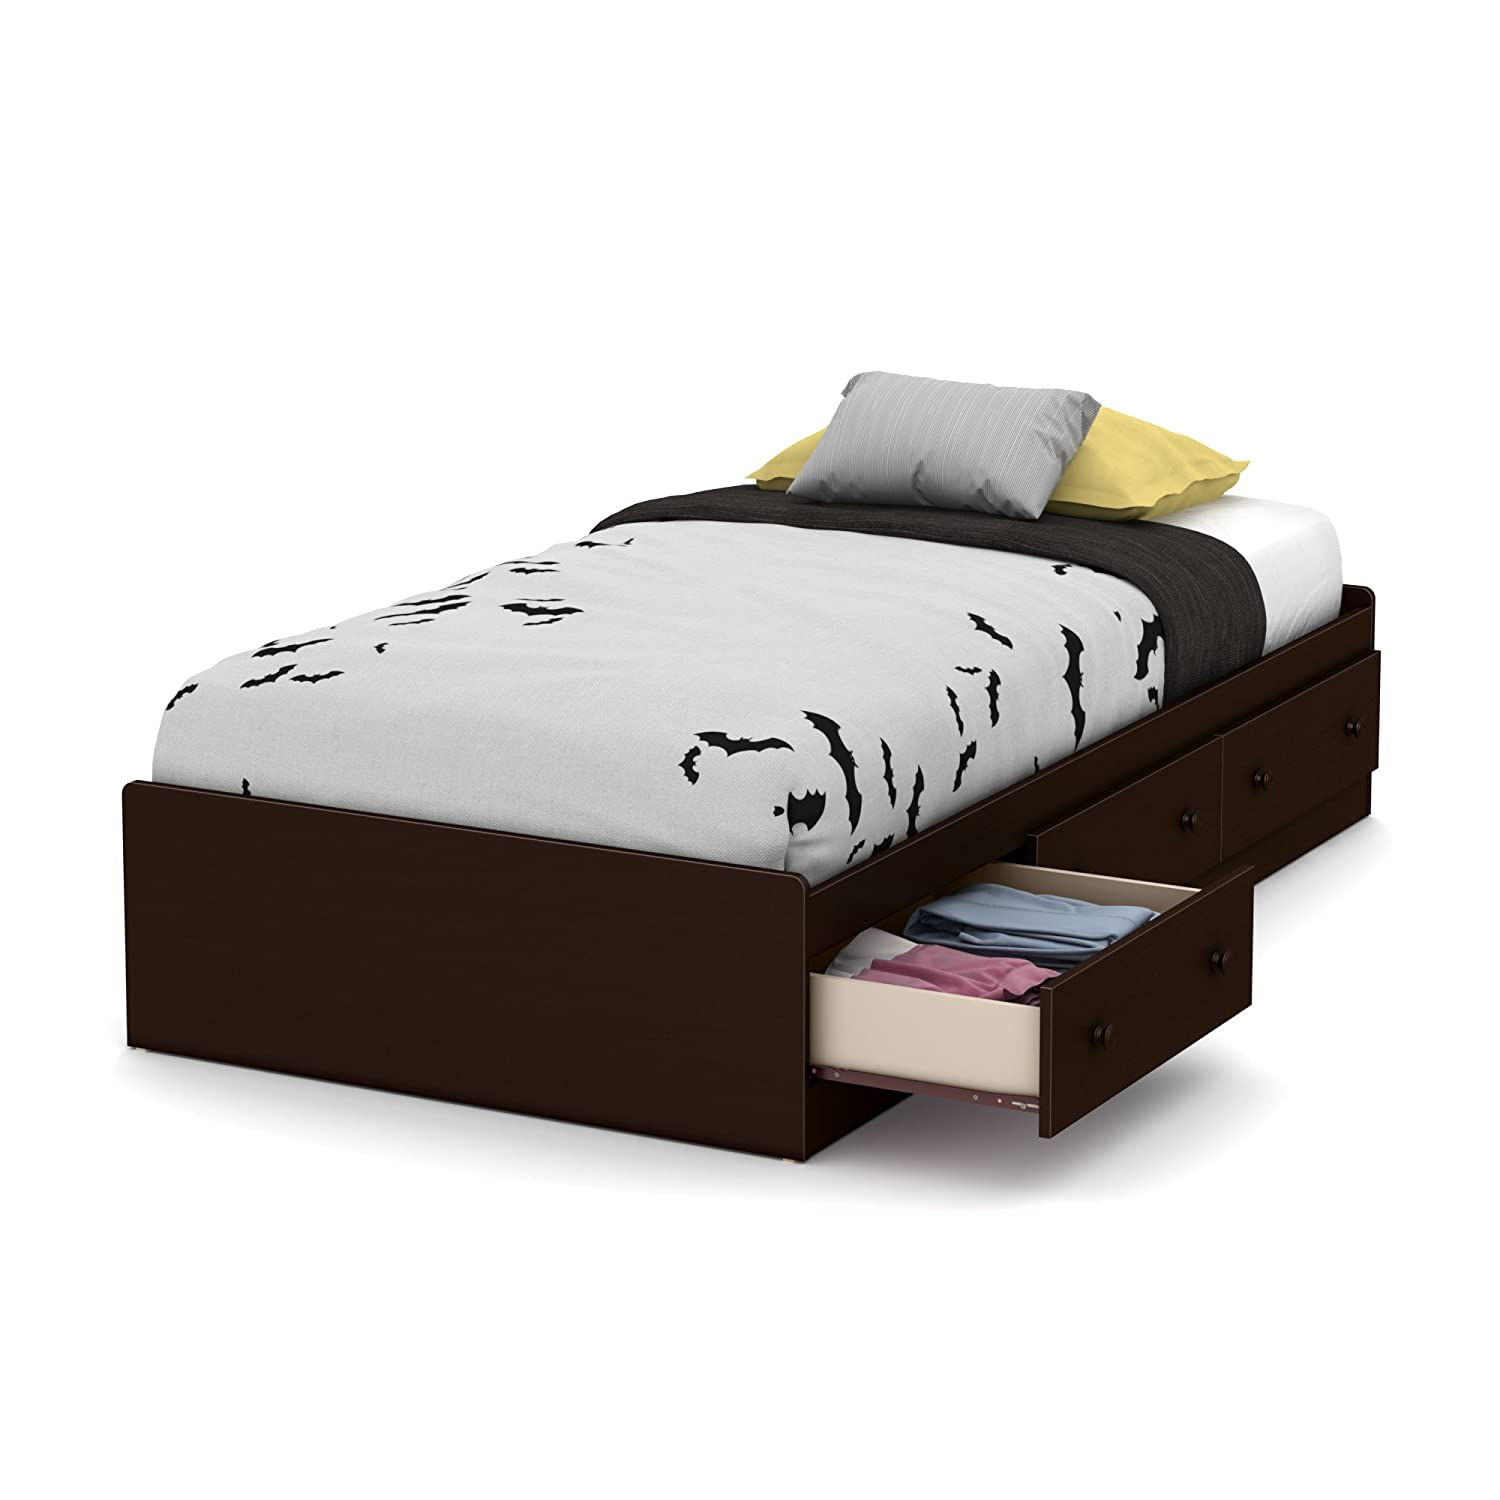 South Shore Little Smileys Twin Mates Bed  39    with 3 Drawers. Kids  Bed Frames  Headboards   Footboards   Amazon com